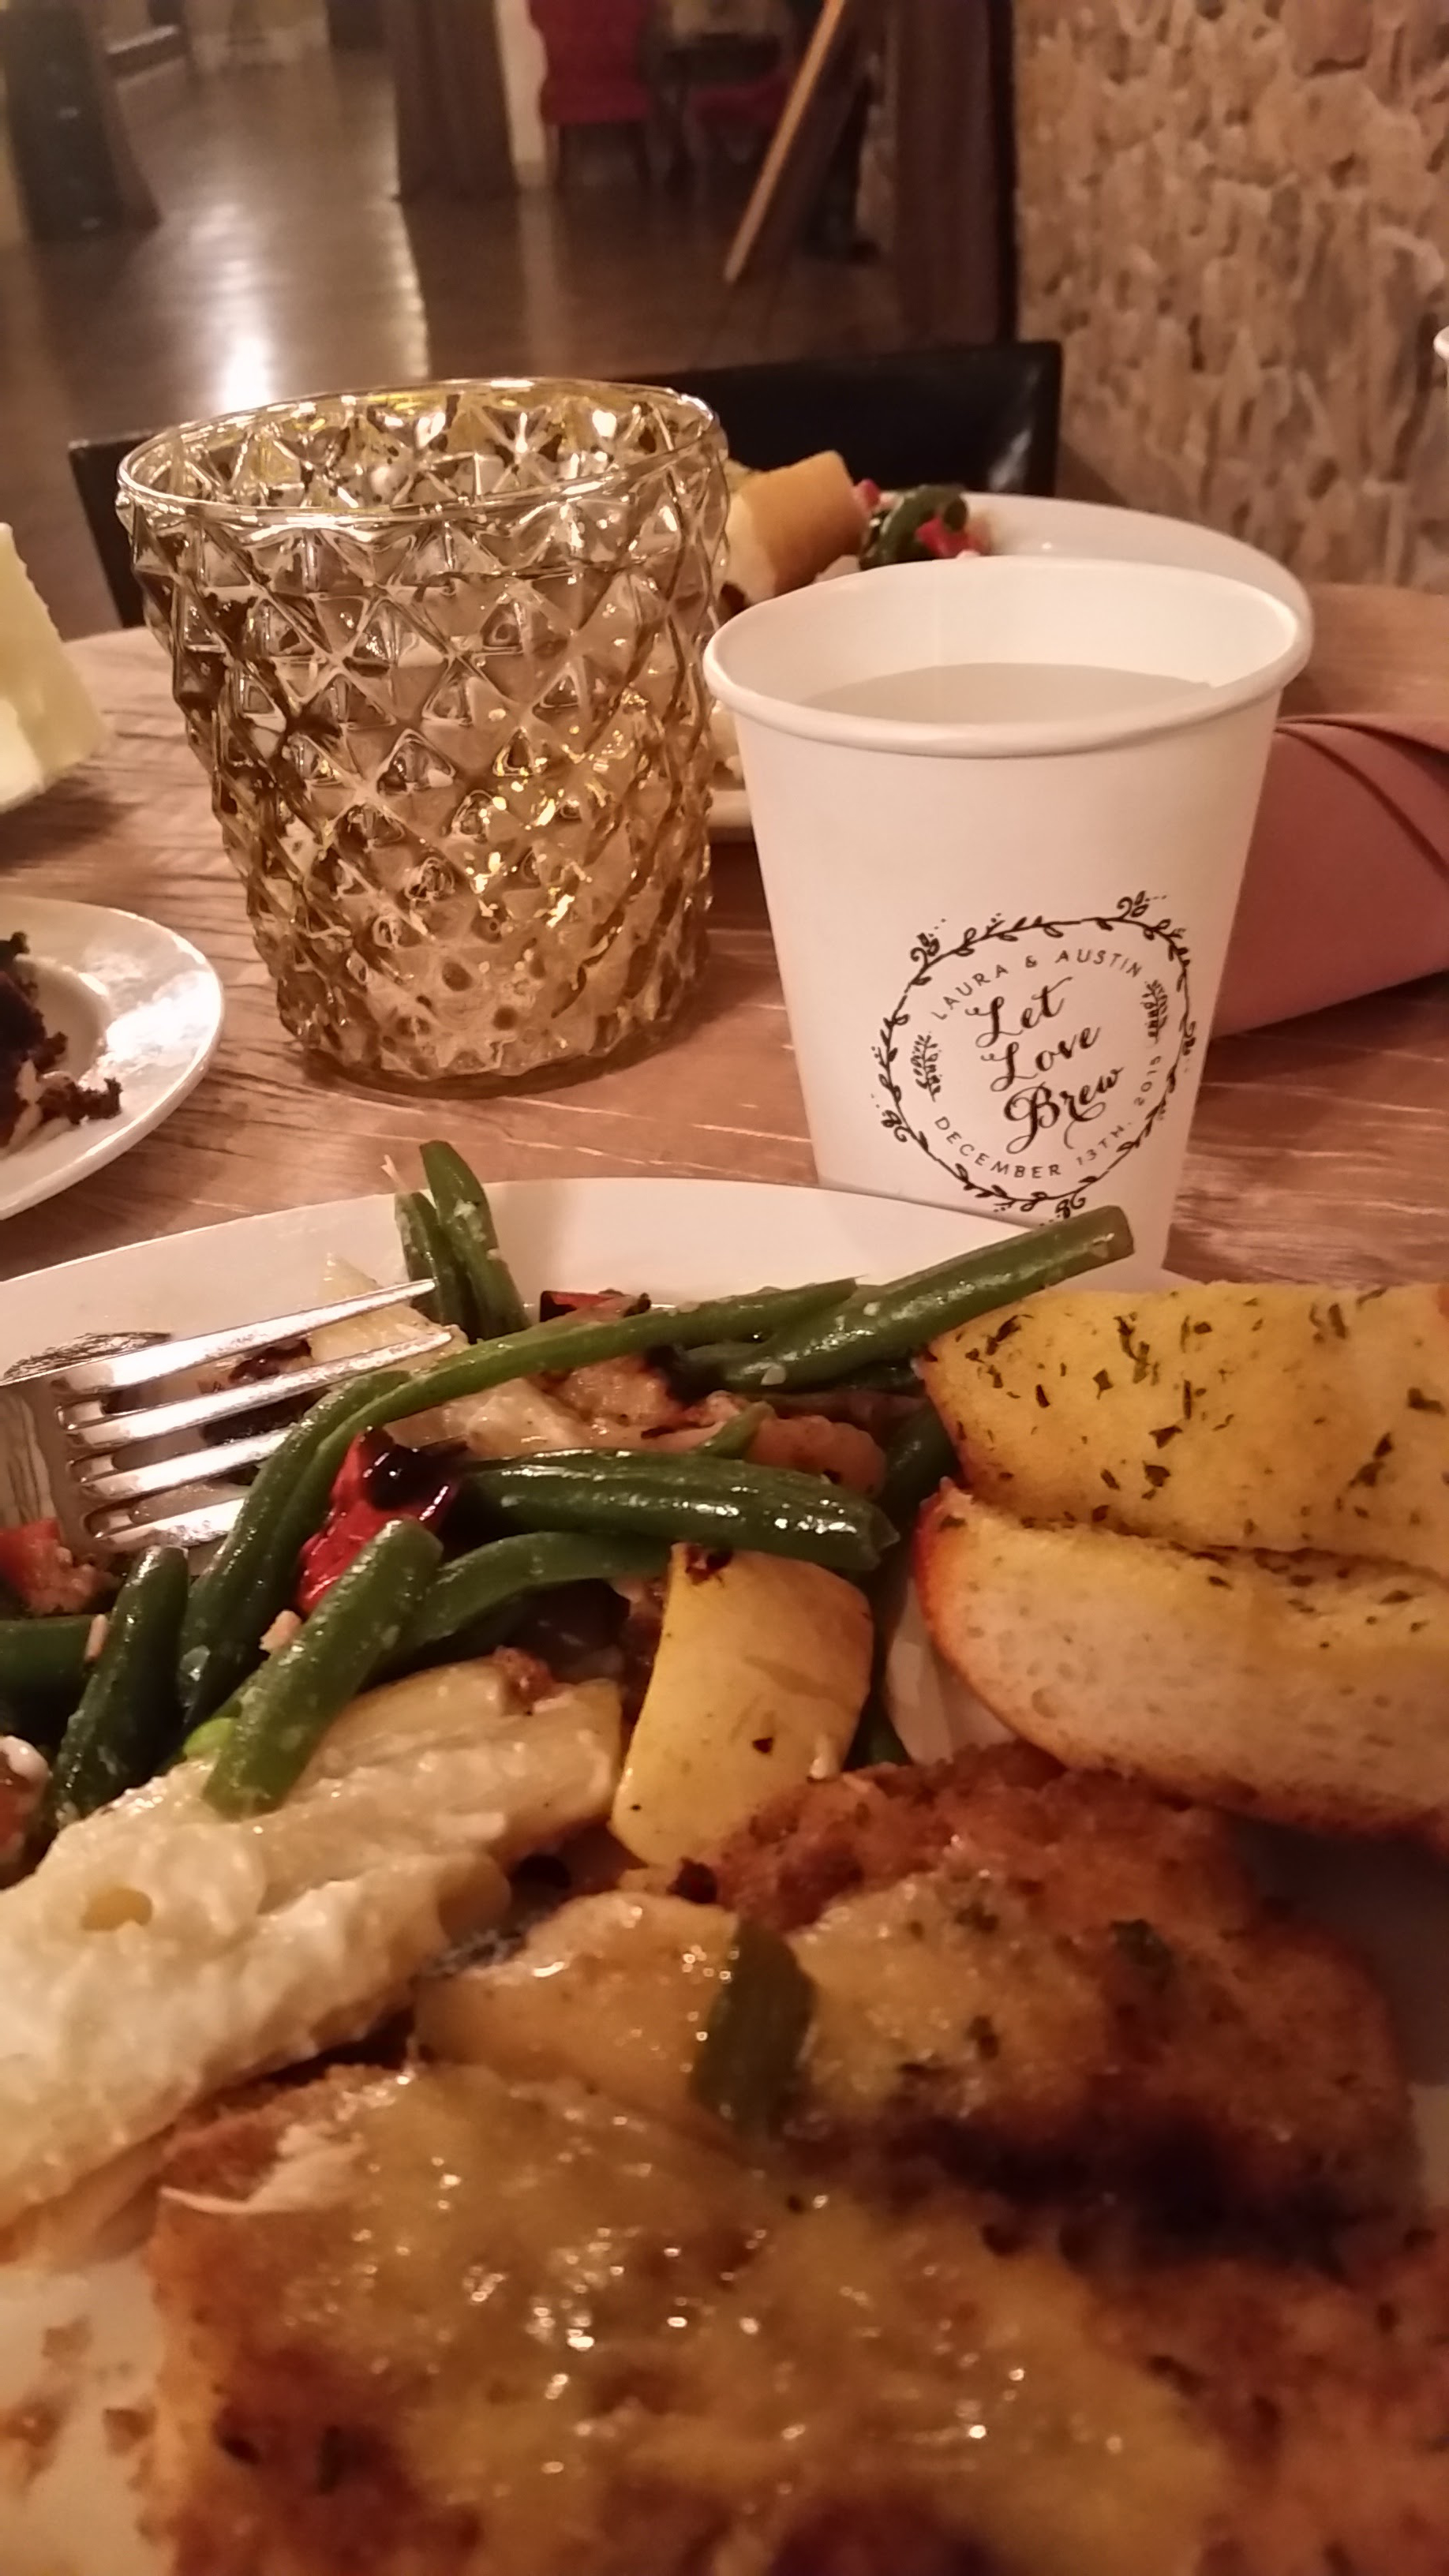 12/13/15 Wedding - Latte & Dinner Plate